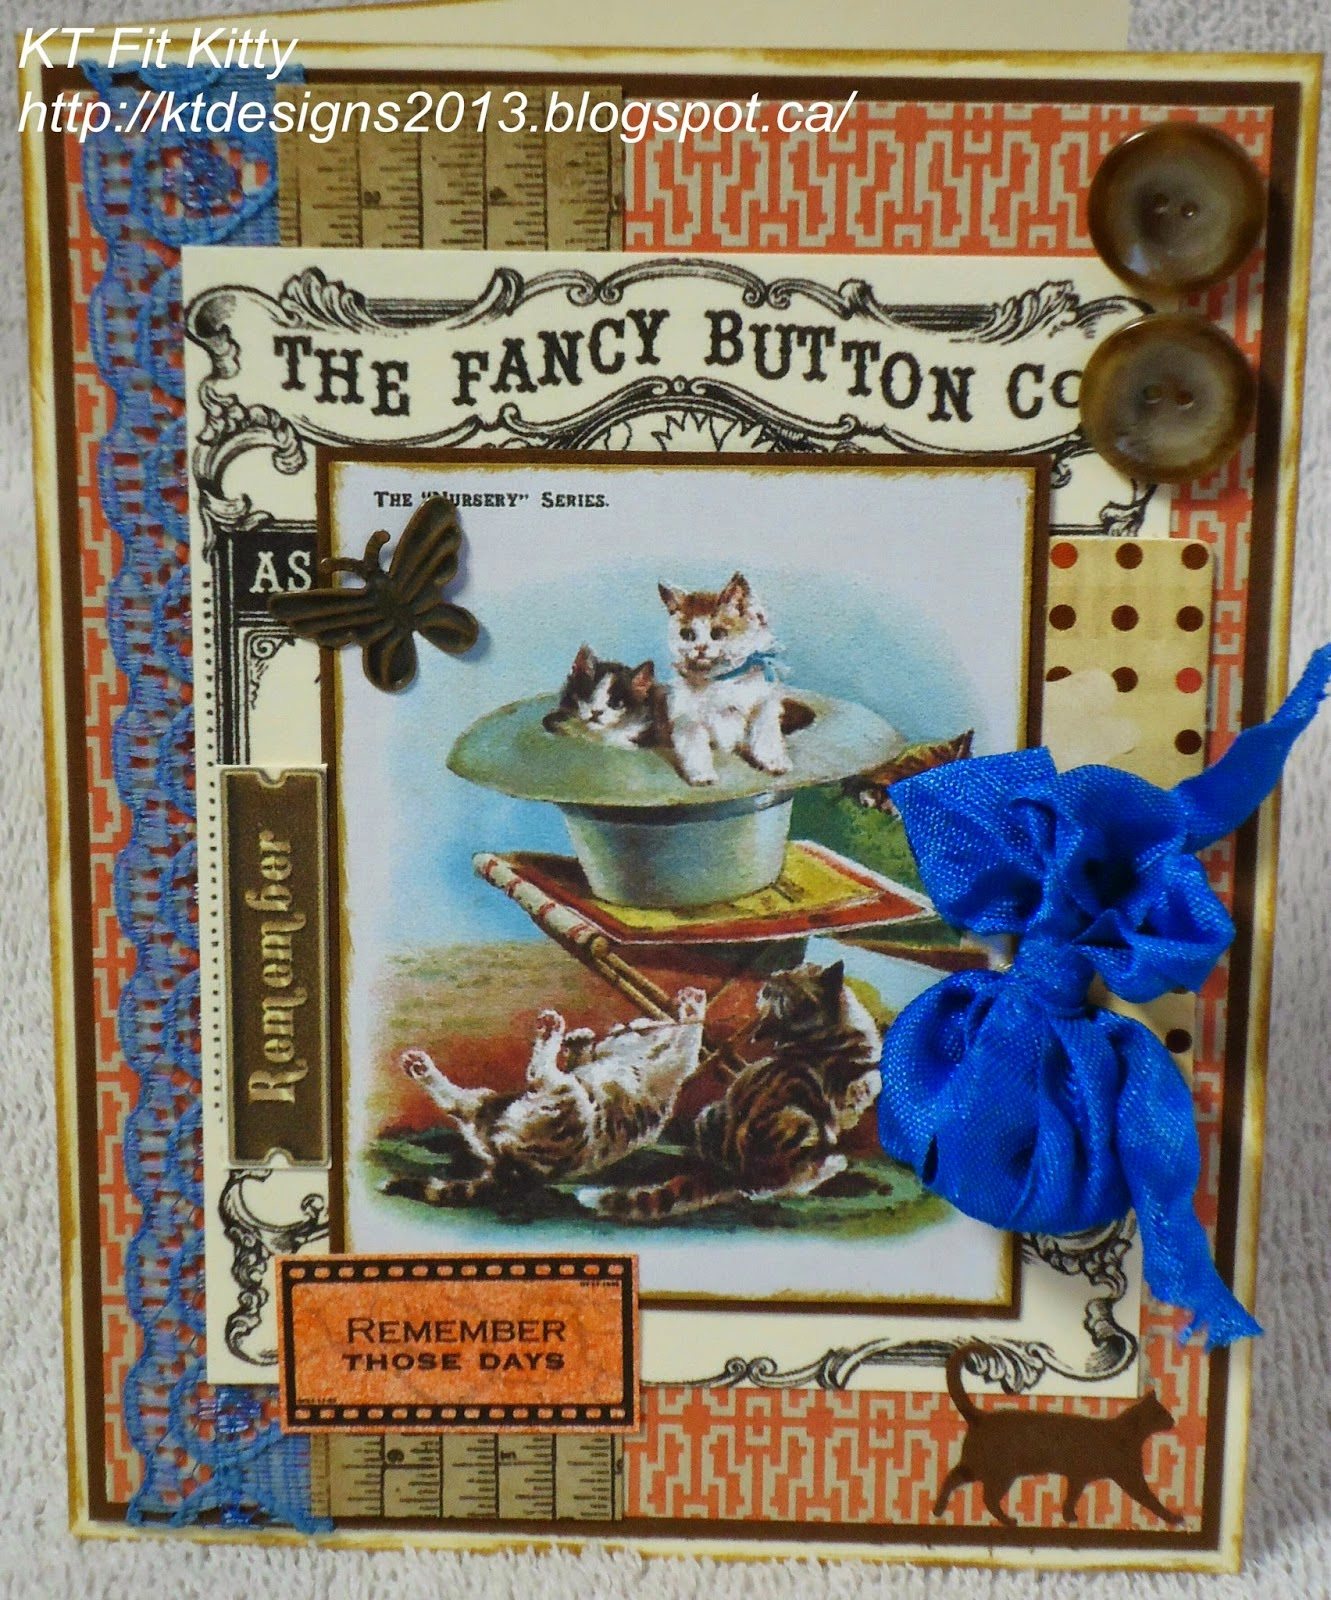 http://ktdesigns2013.blogspot.ca/2014/09/vintage-kittens-1-of-3-nicecrane-designs.html